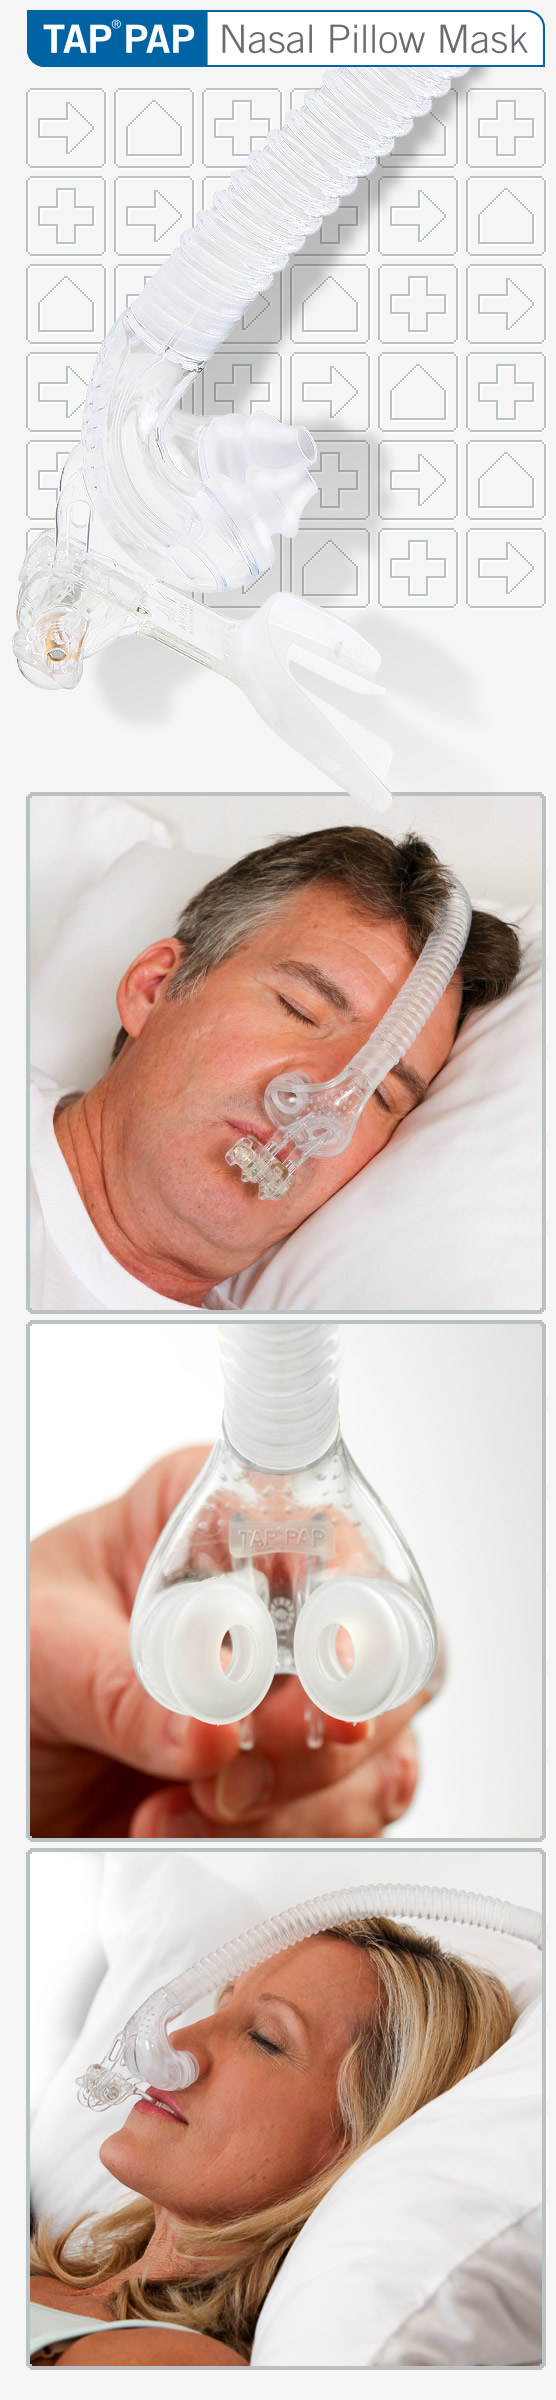 headgear respironics mask with comfort cushion pillow cpap comfortlite a nose lite philips and nasal